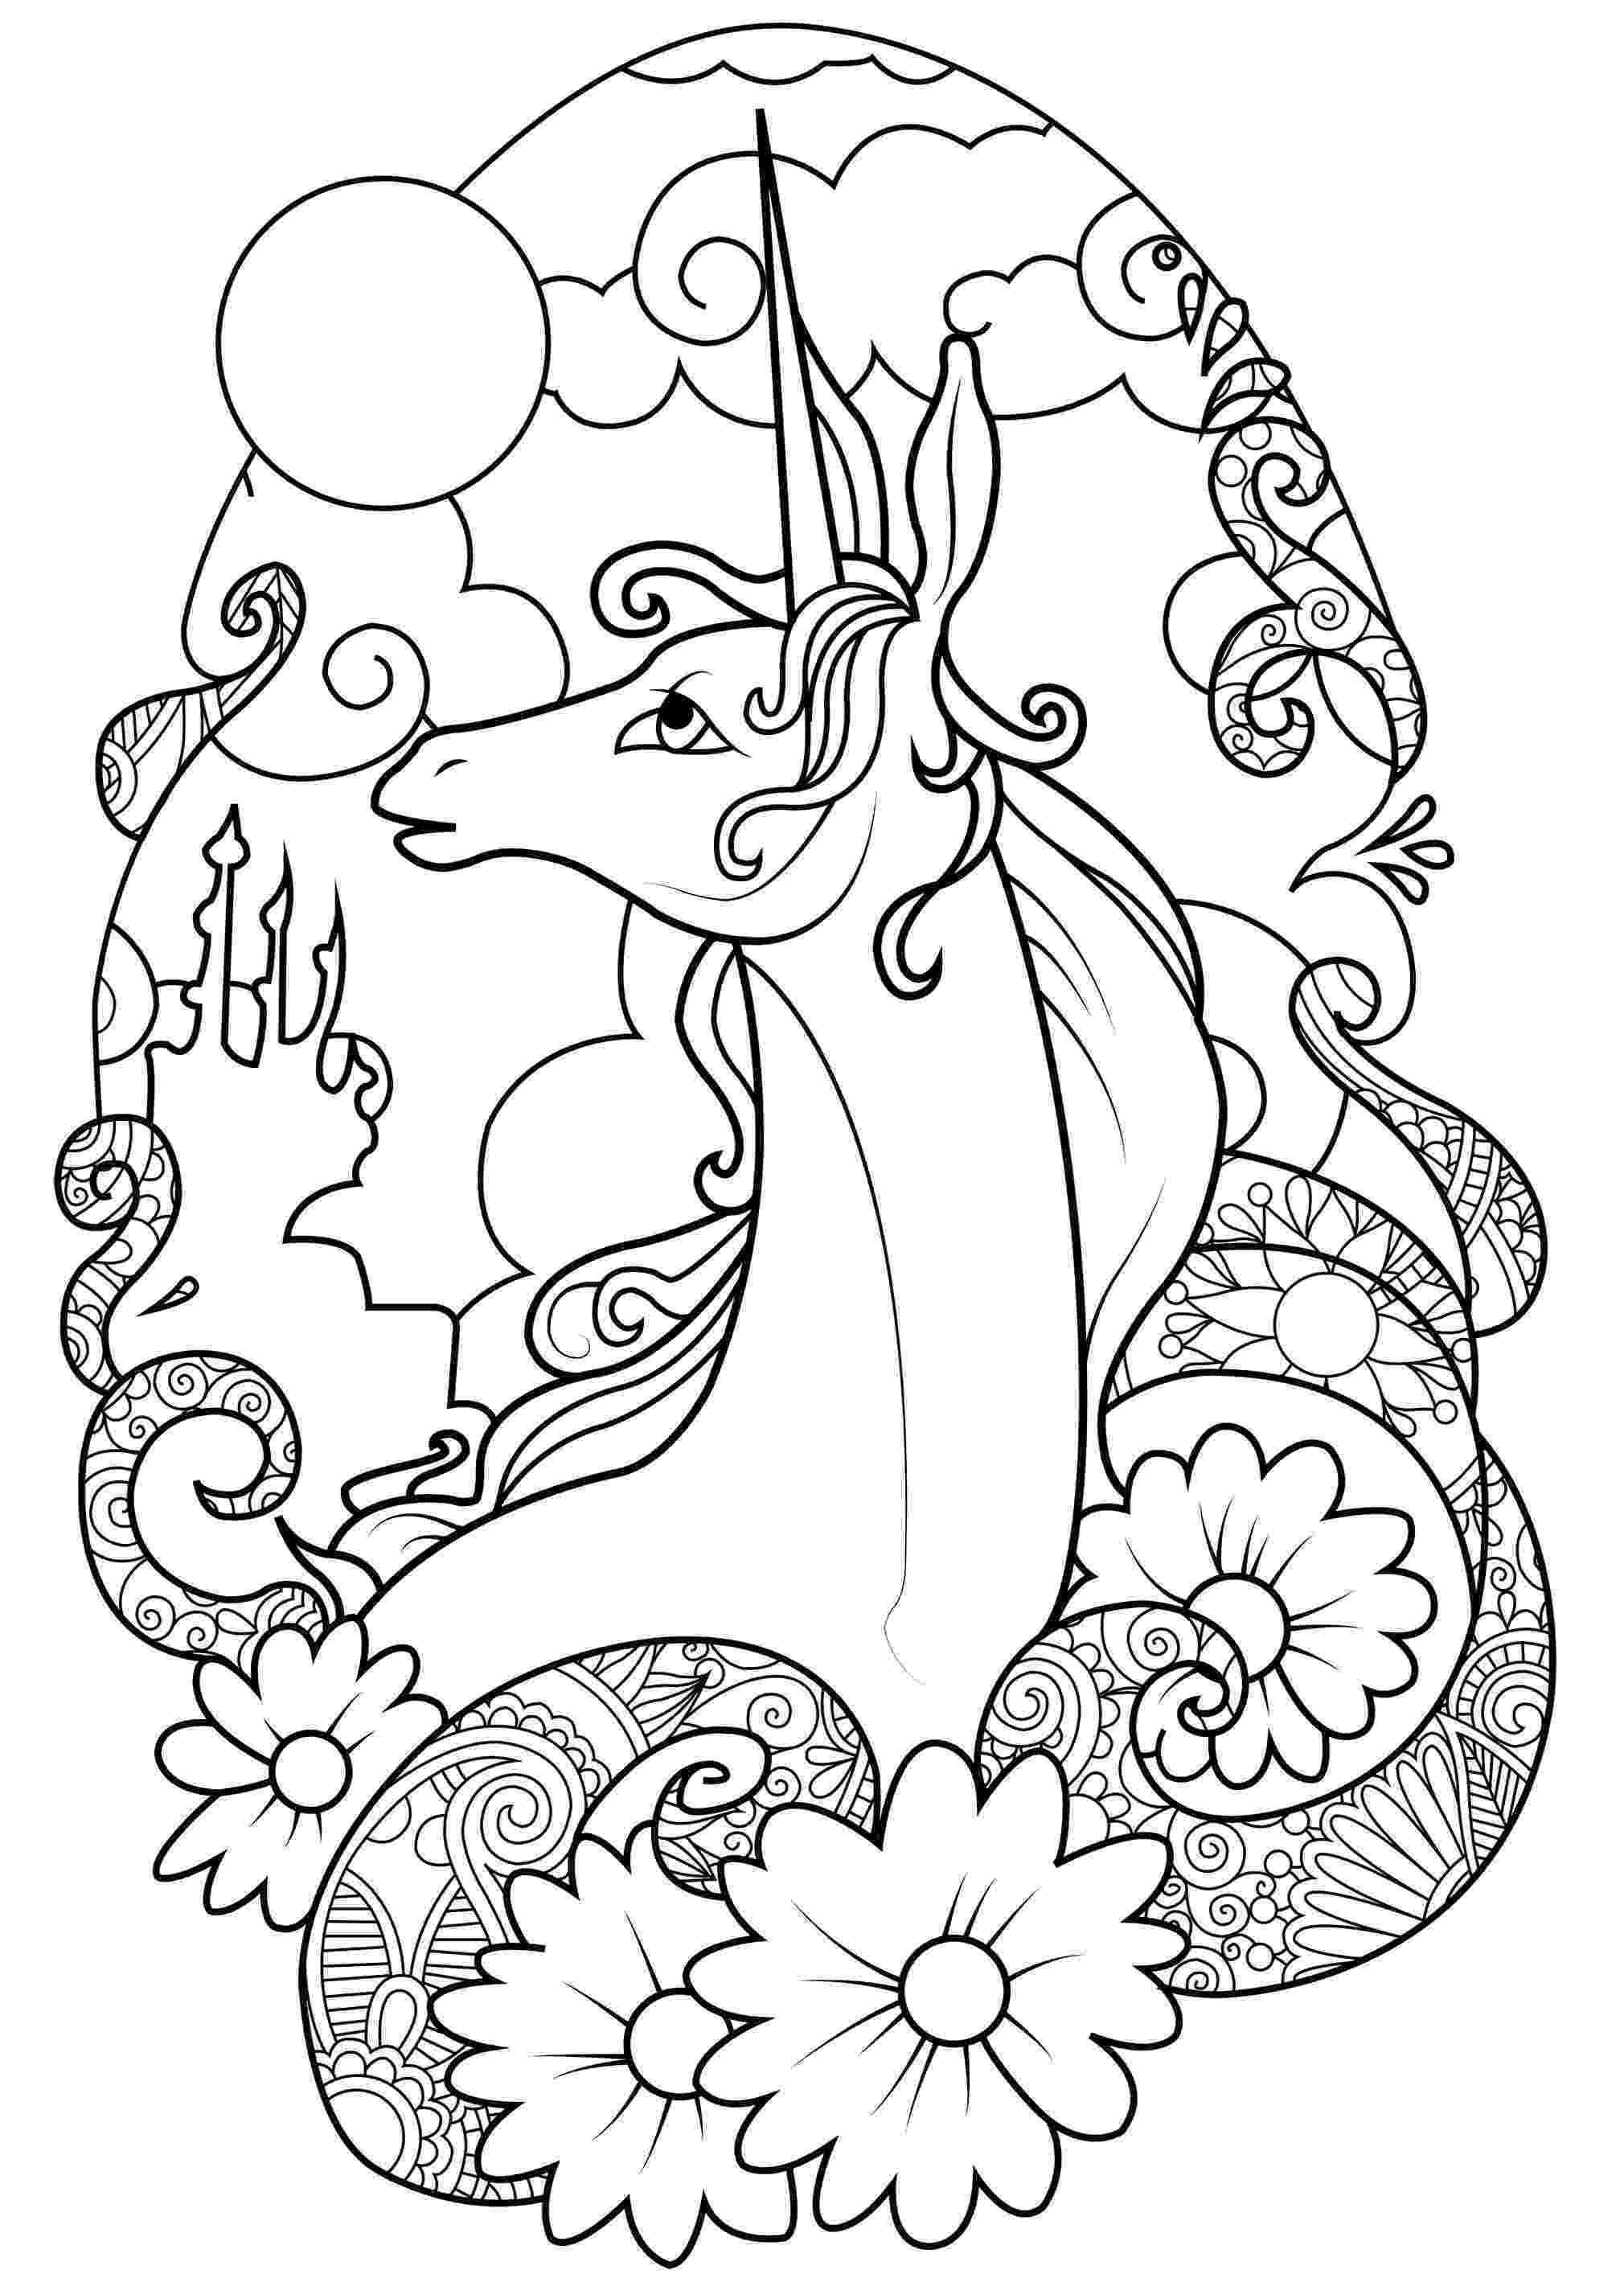 unicorn coloring pictures unicorn coloring page for kids stock illustration unicorn pictures coloring